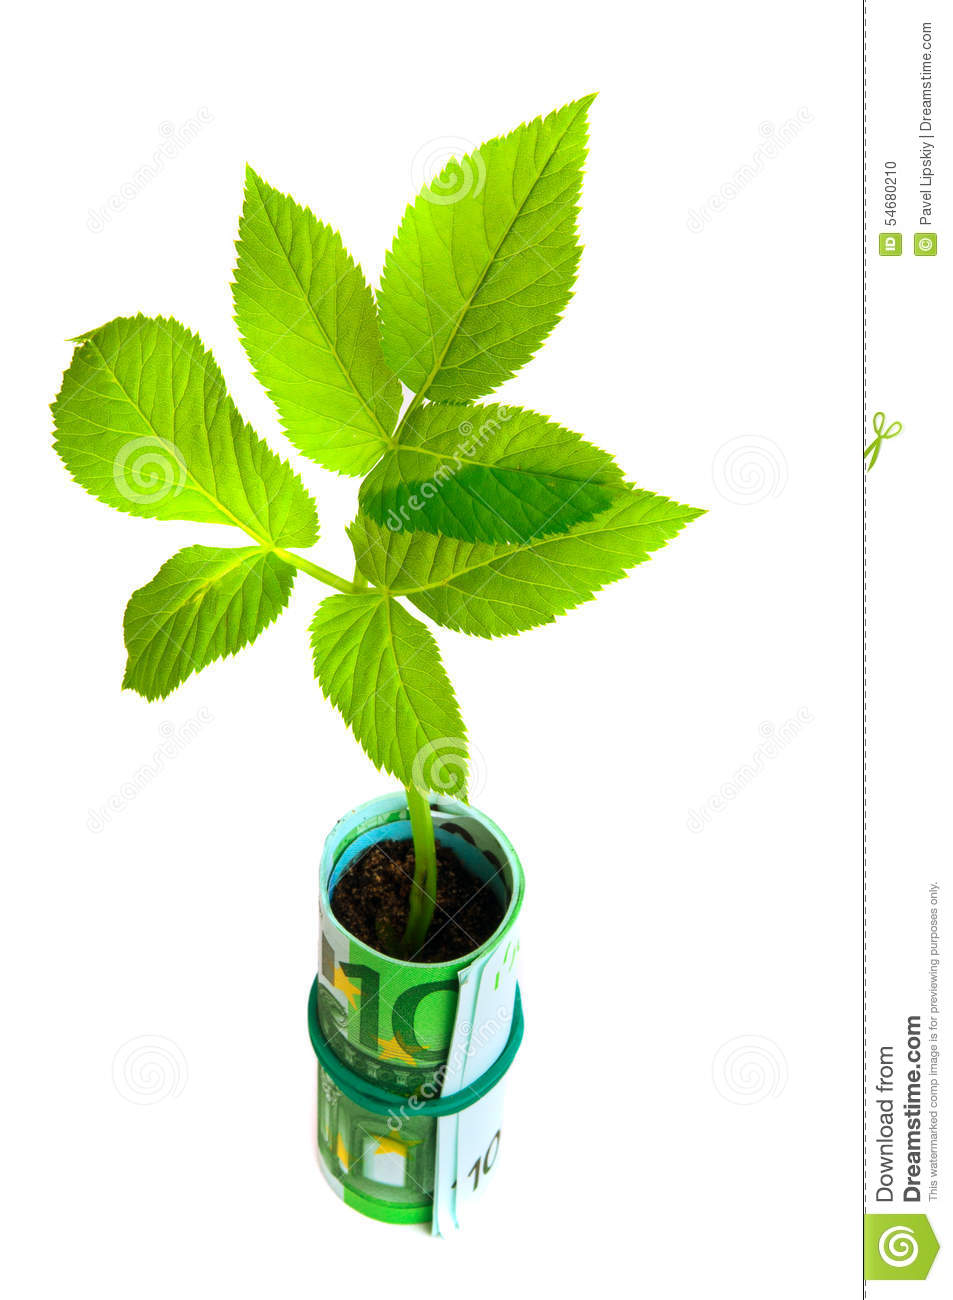 go green grow green O tomatoes, instead of onions, bring tears to your eyes are you uneasy about all those chemicals in your veggies do you ache to bring a green relief from the.